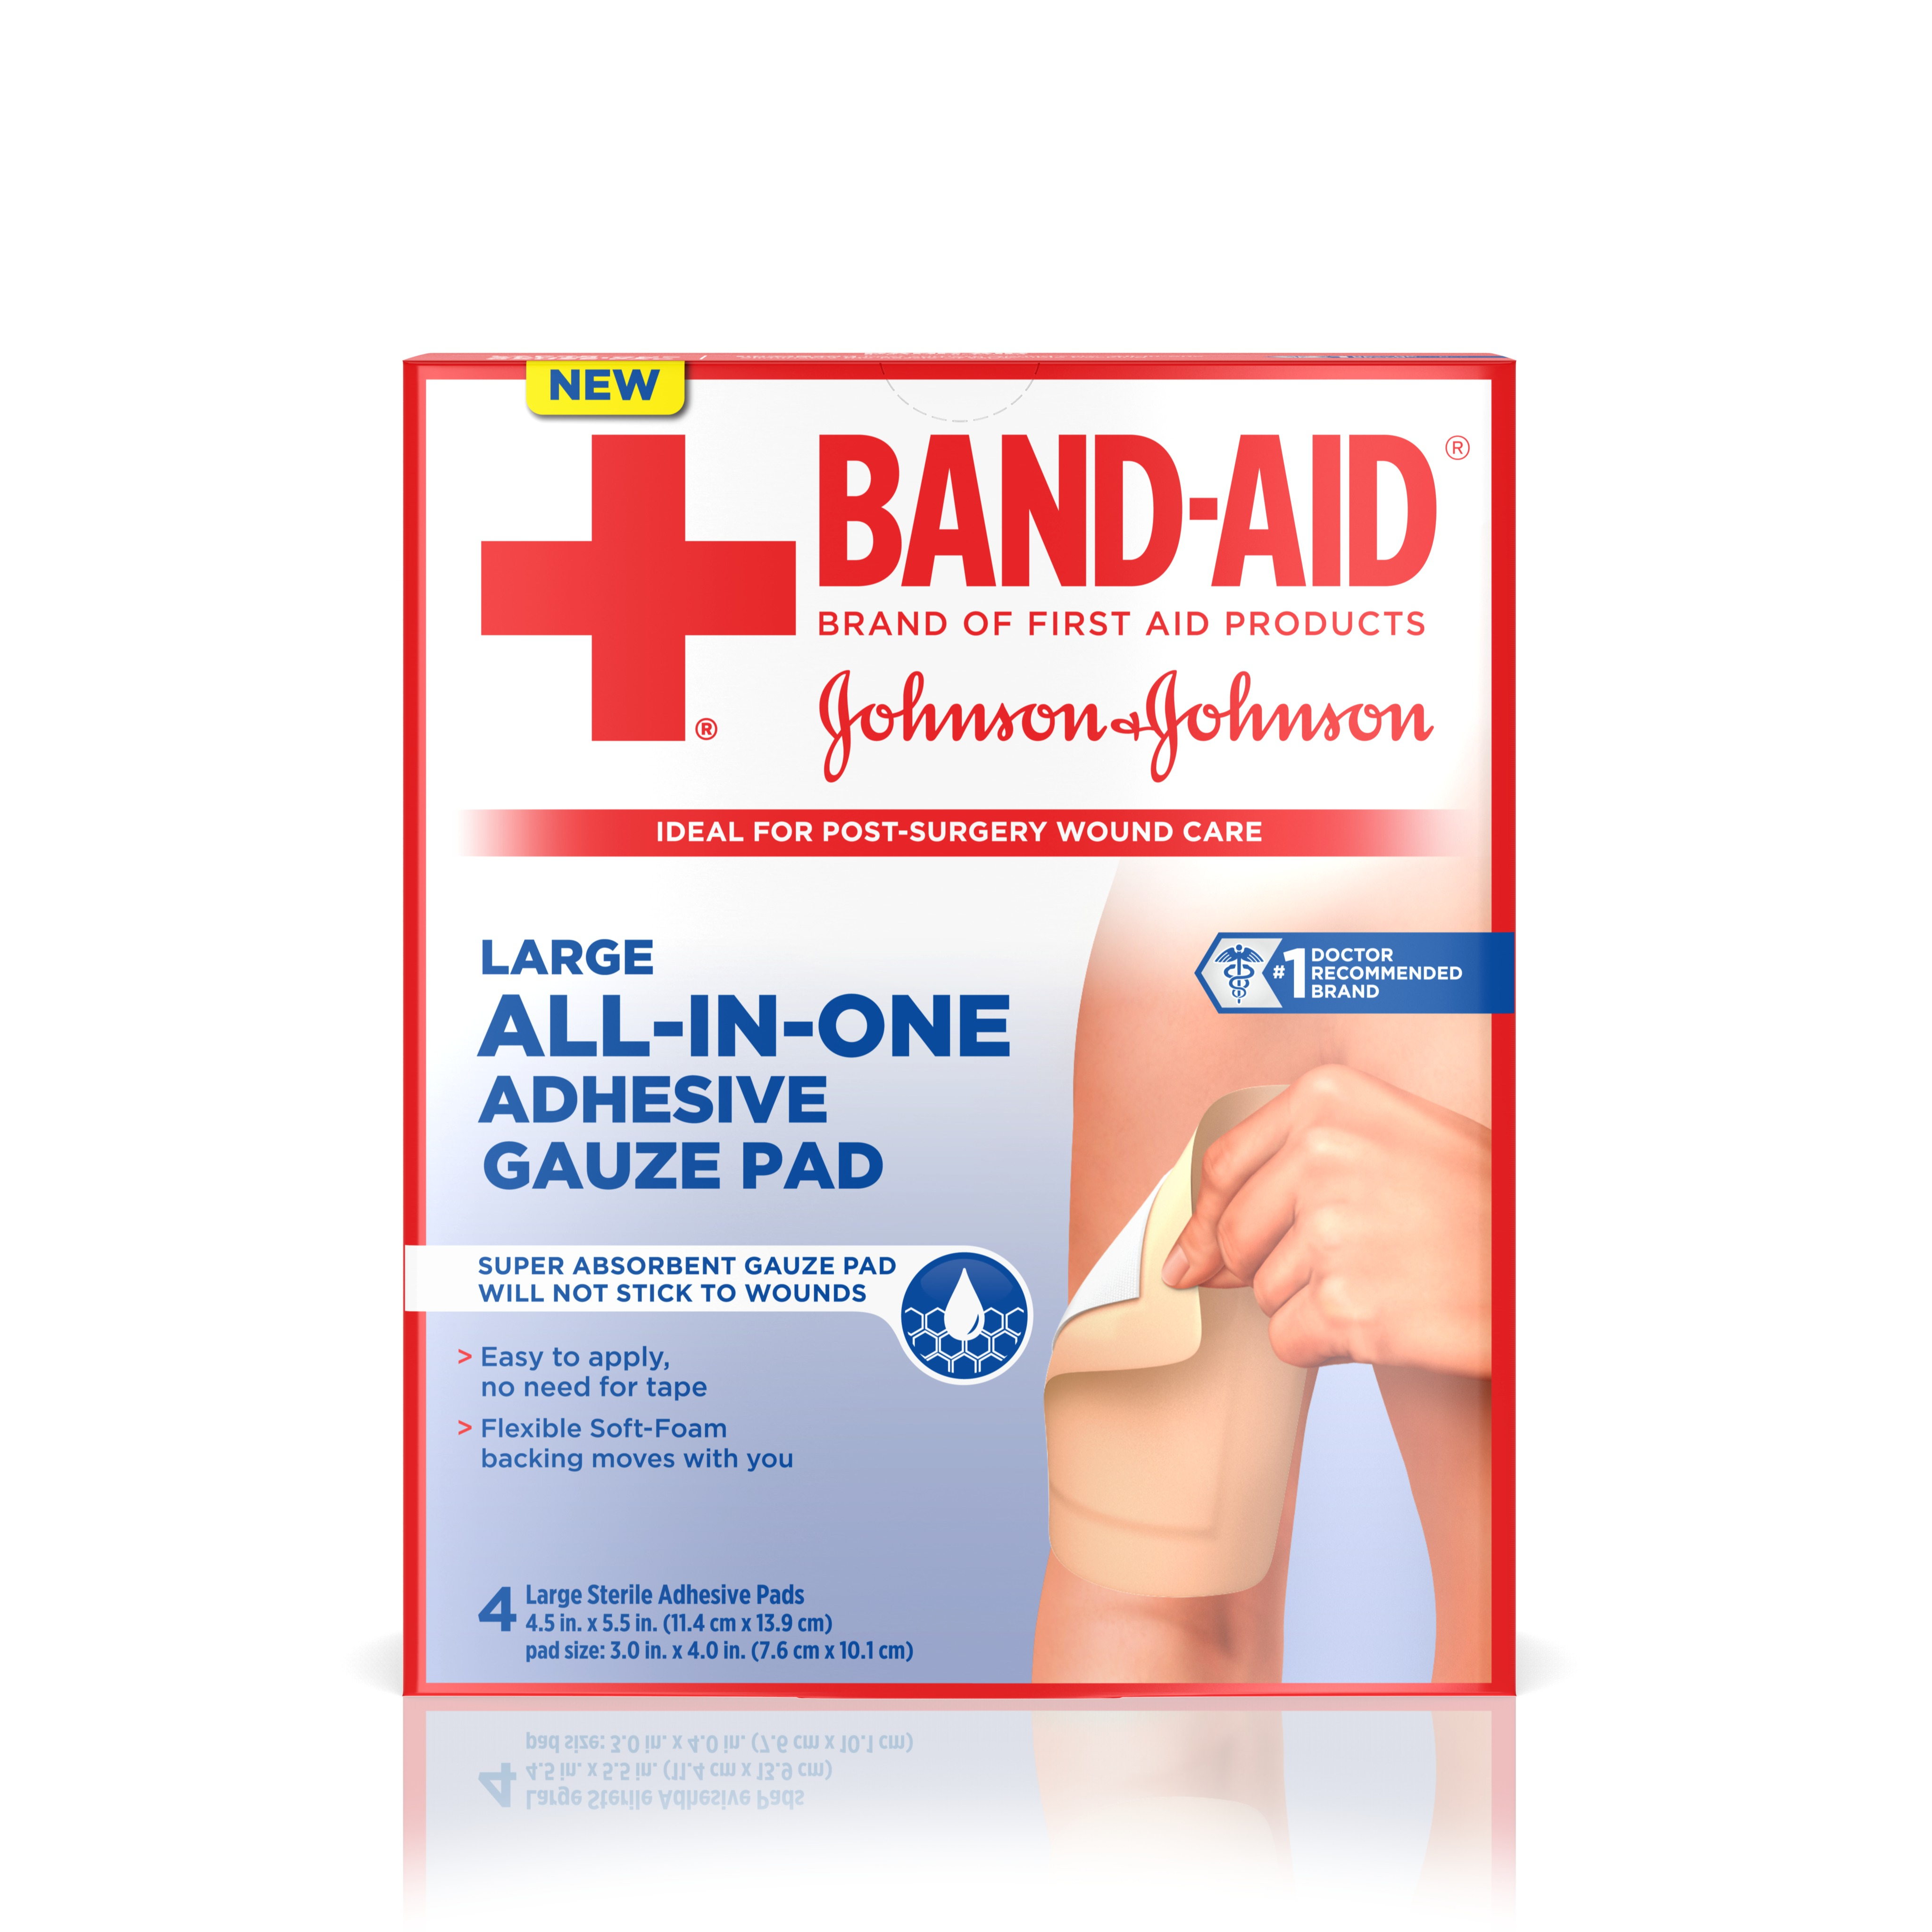 Click here to buy BAND-AID Brand of First Aid Products All-in-One Adhesive Gauze Pad Helps to Keep Wounds Clean, Large by Johnson & Johnson.